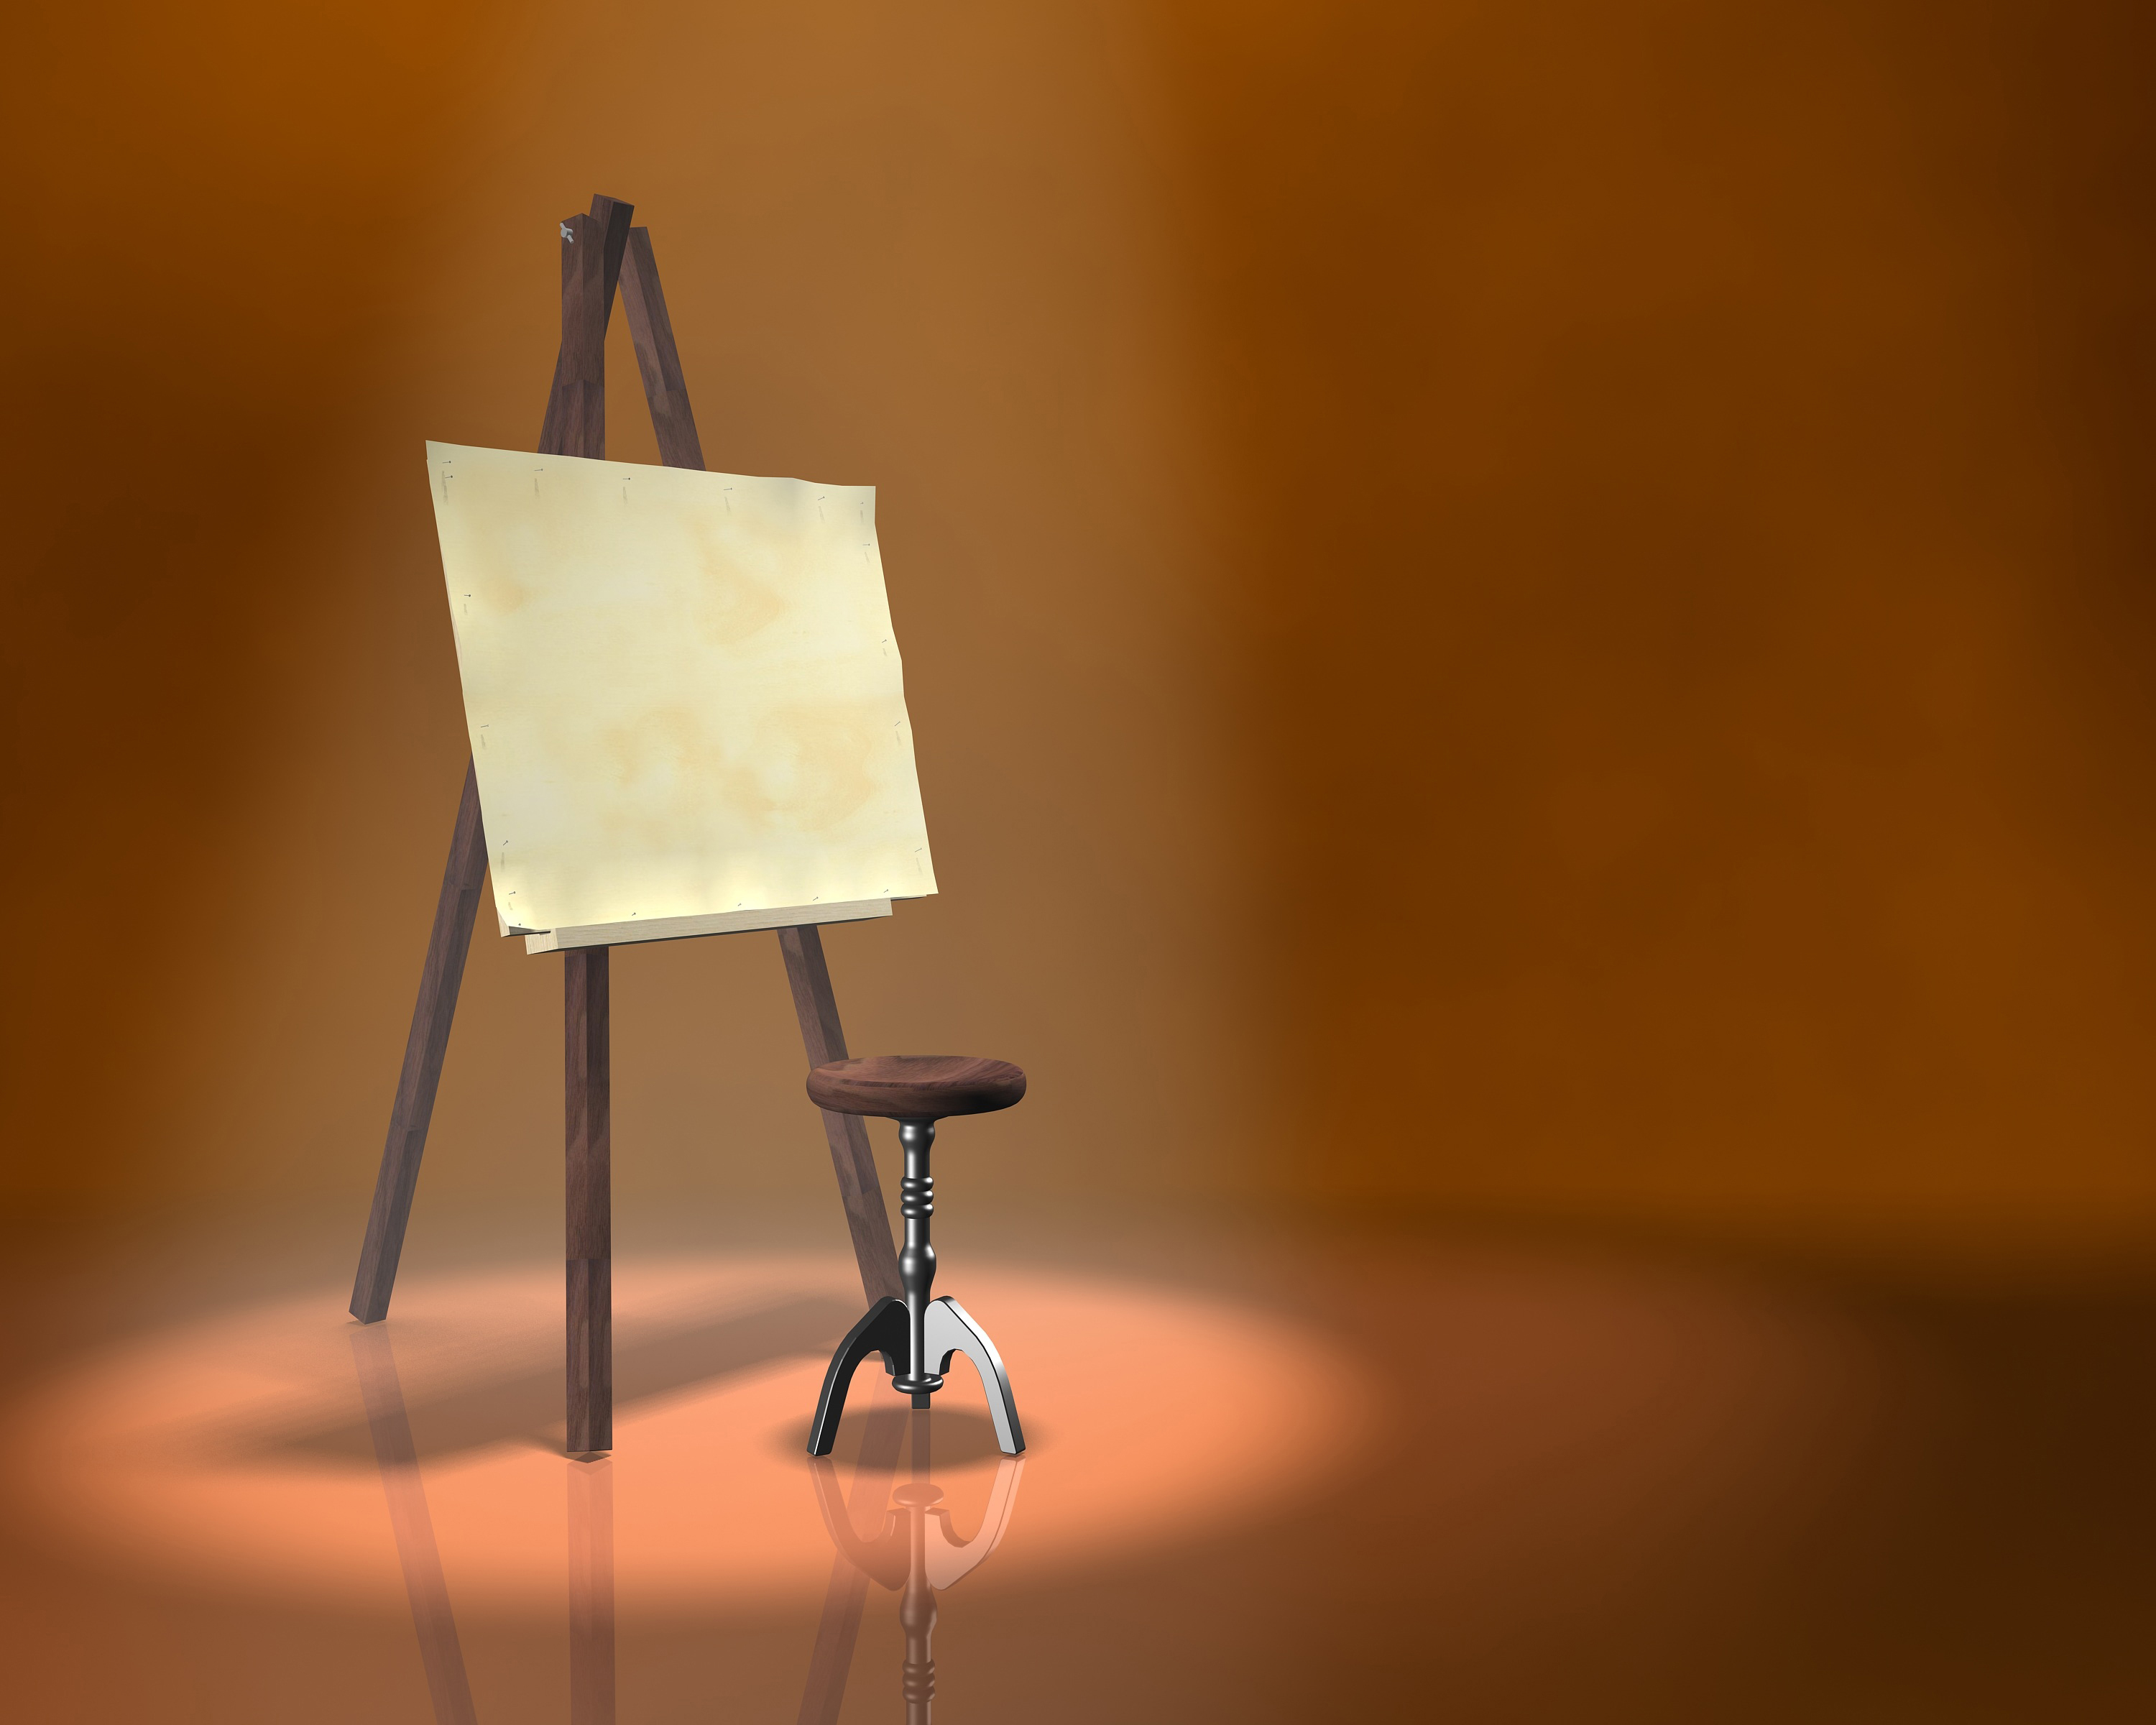 painting board,easel,artist